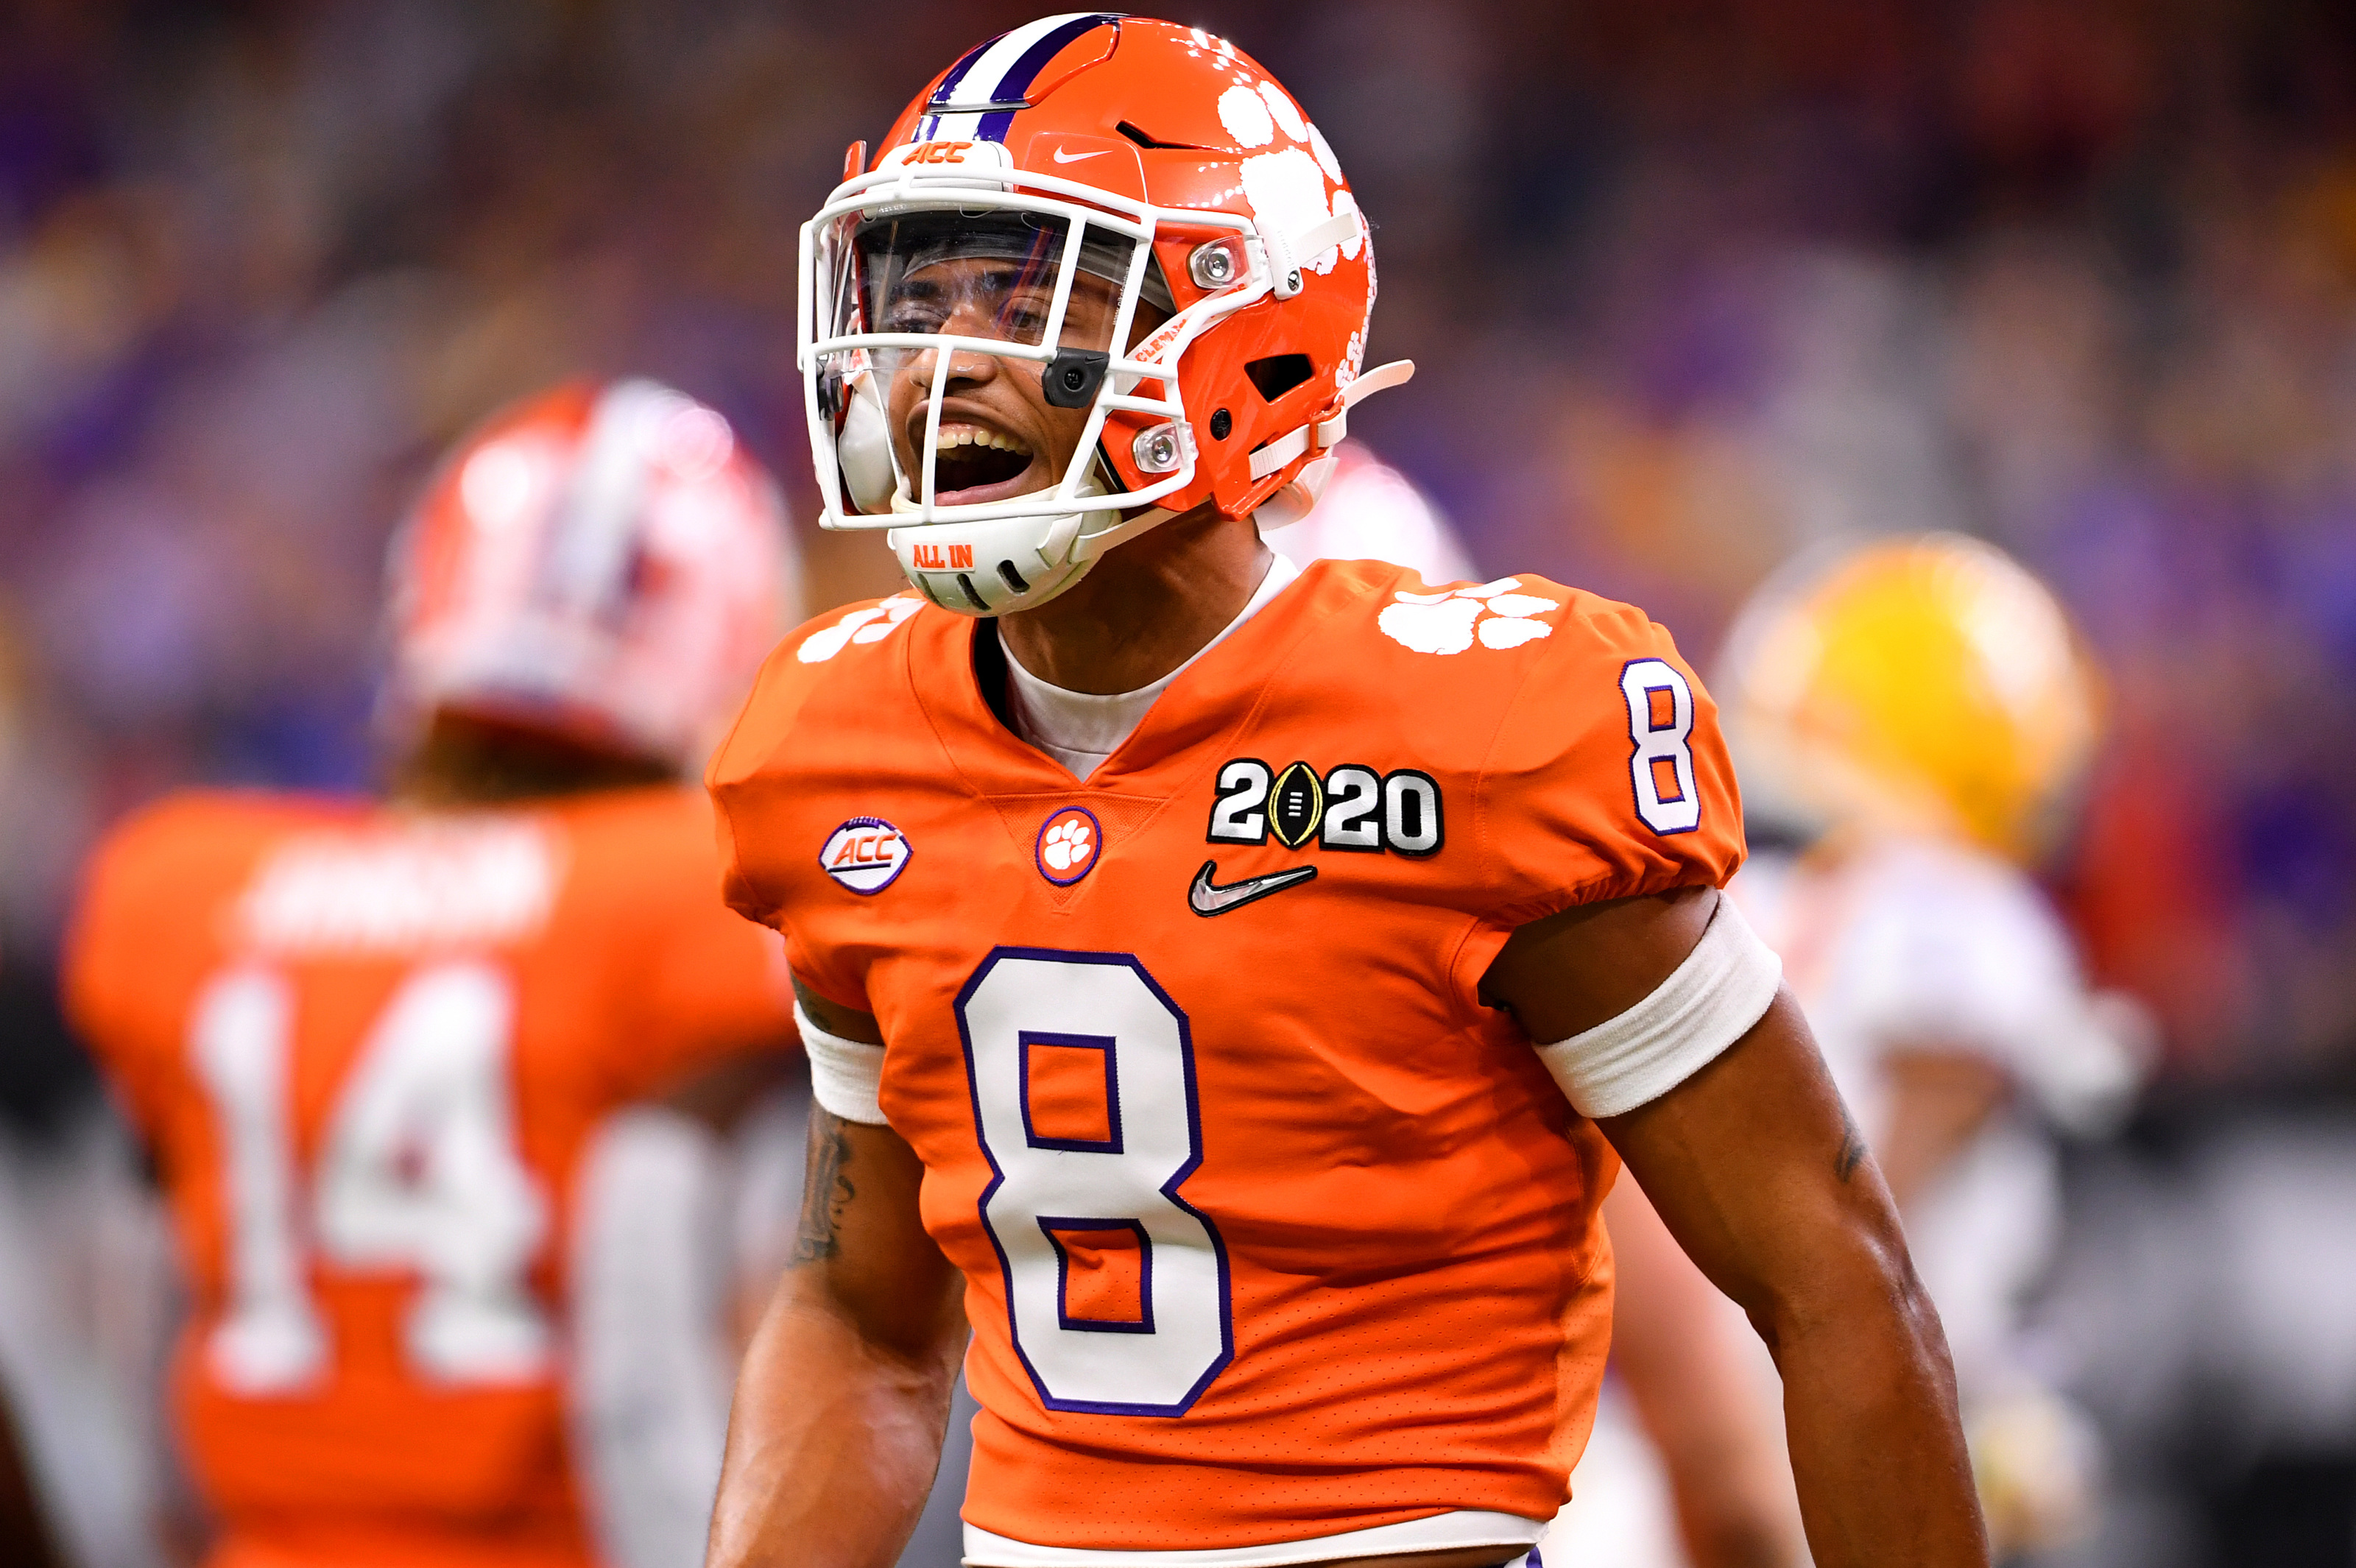 2020 NFL Draft: 49ers can target these 3 cornerbacks in Round 1